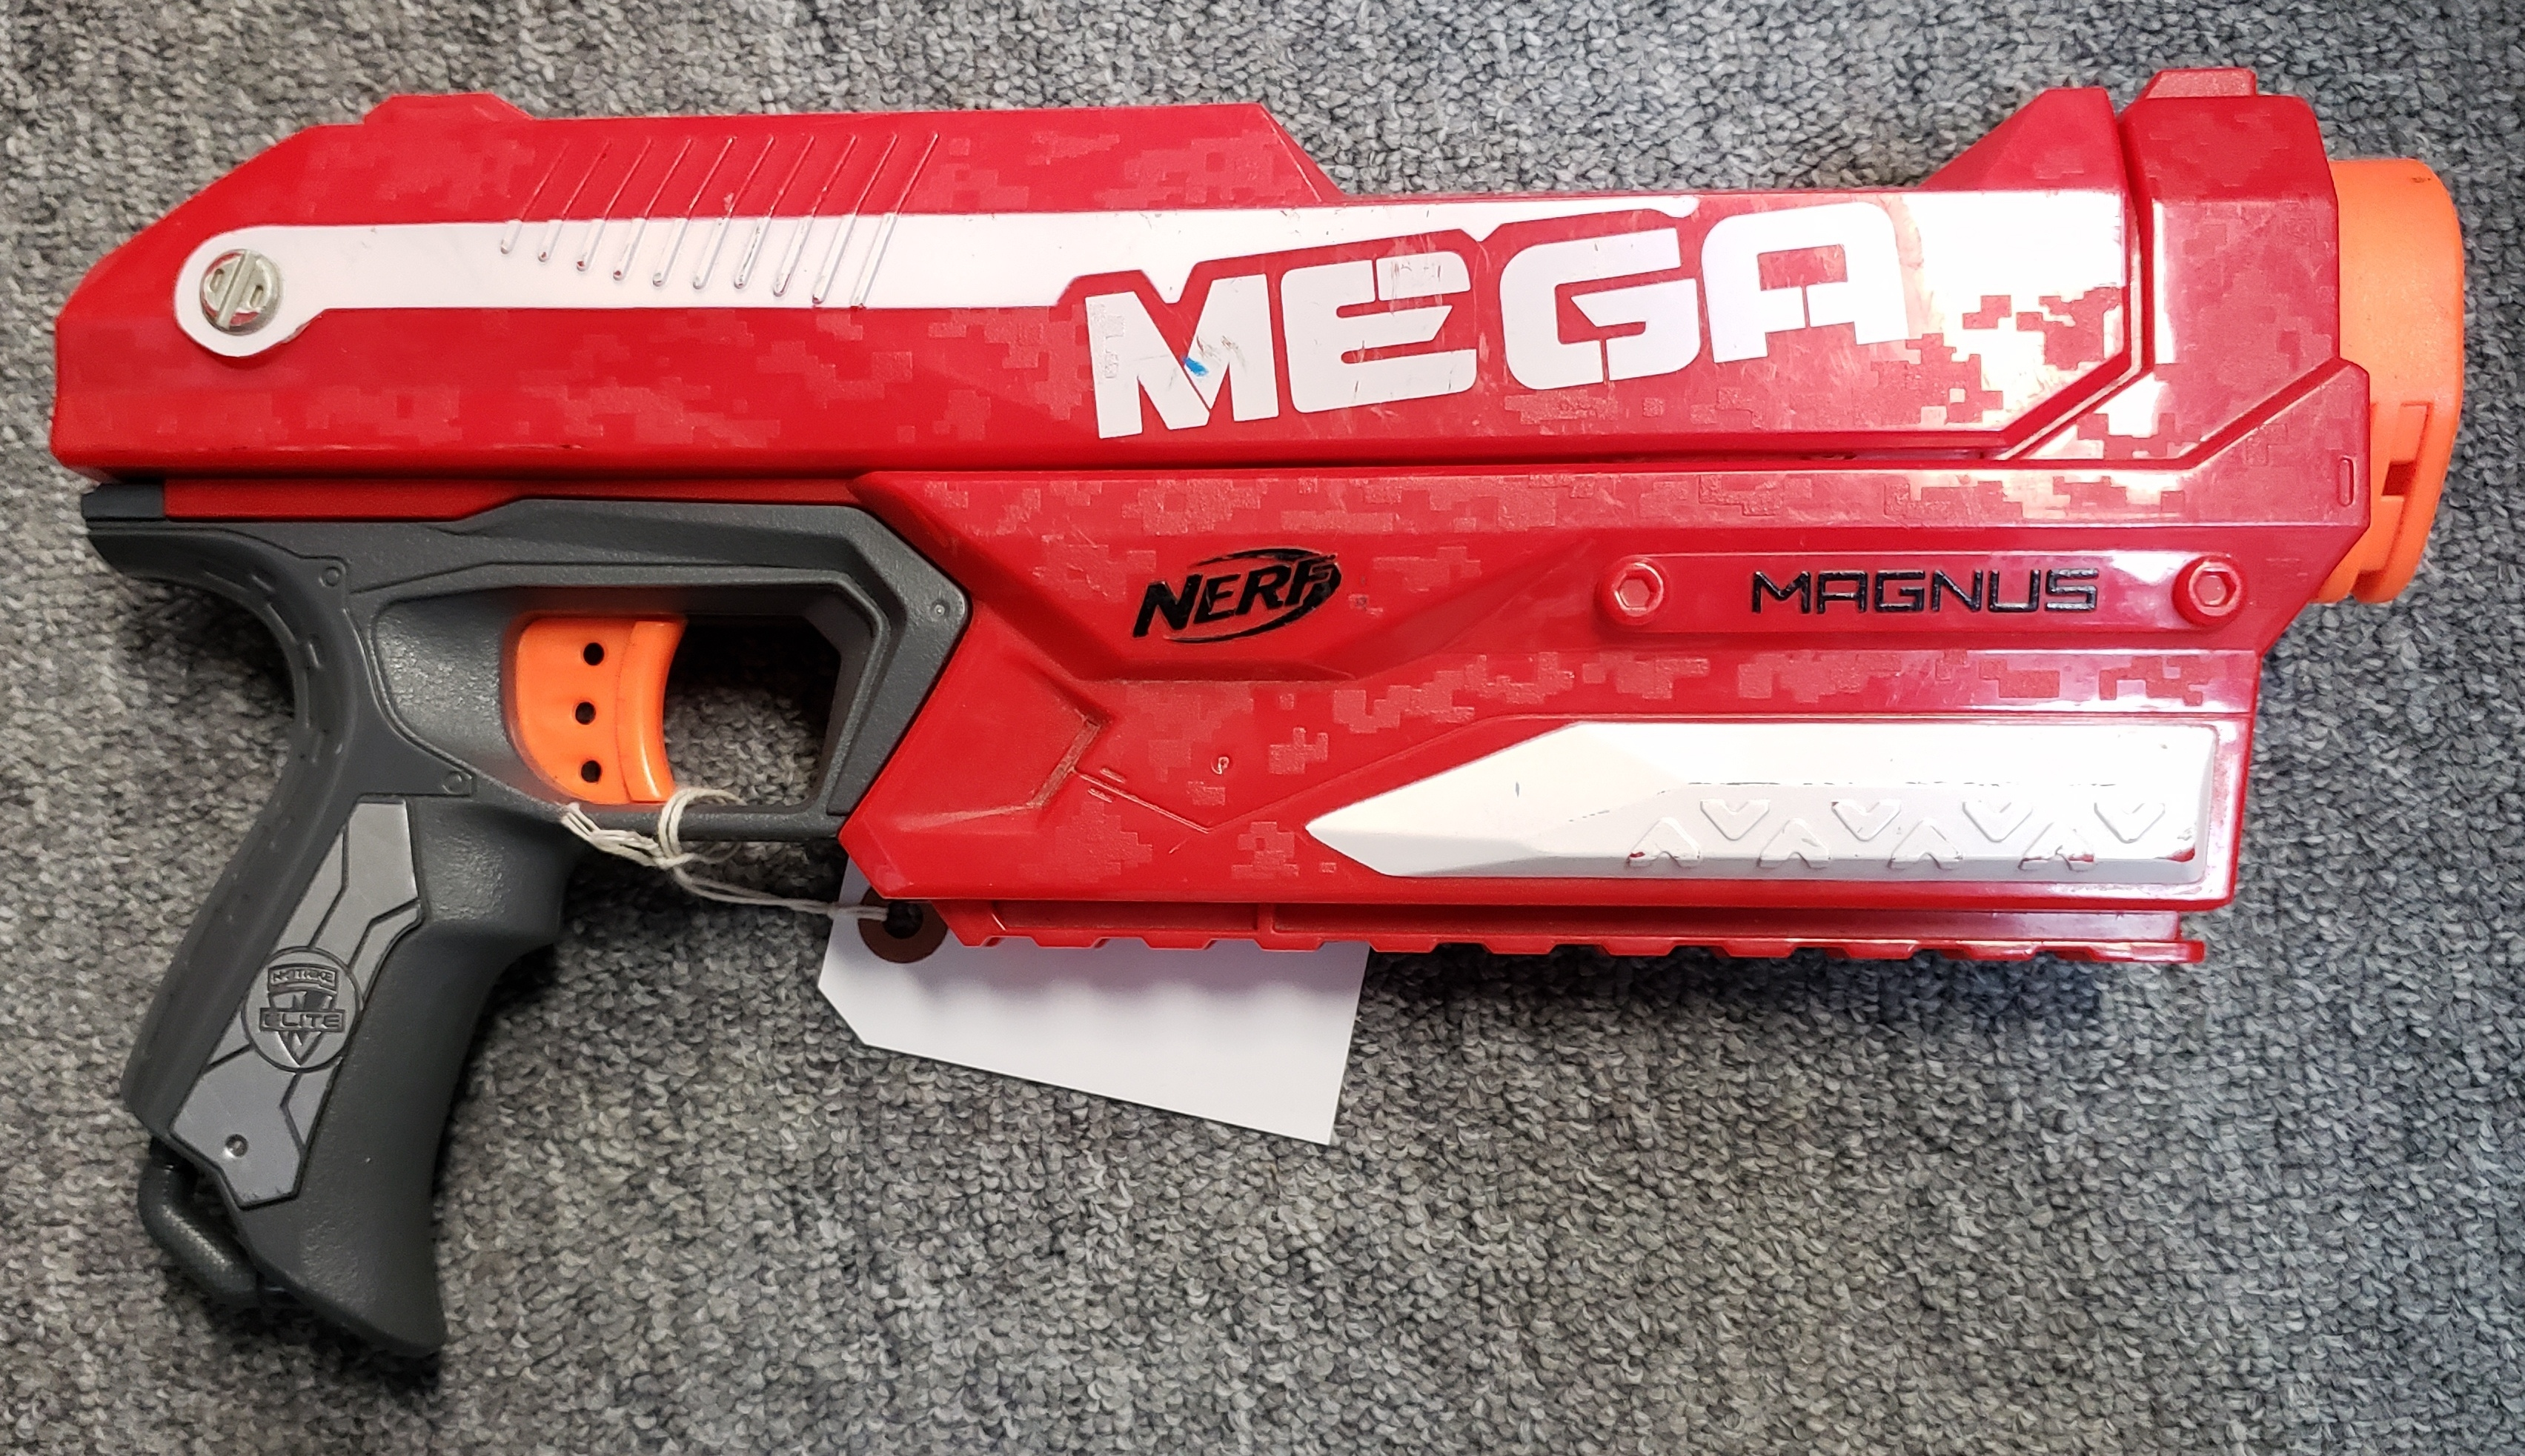 NERF MEGA MAGNUS BLASTER (NO DARTS INCLUDED)